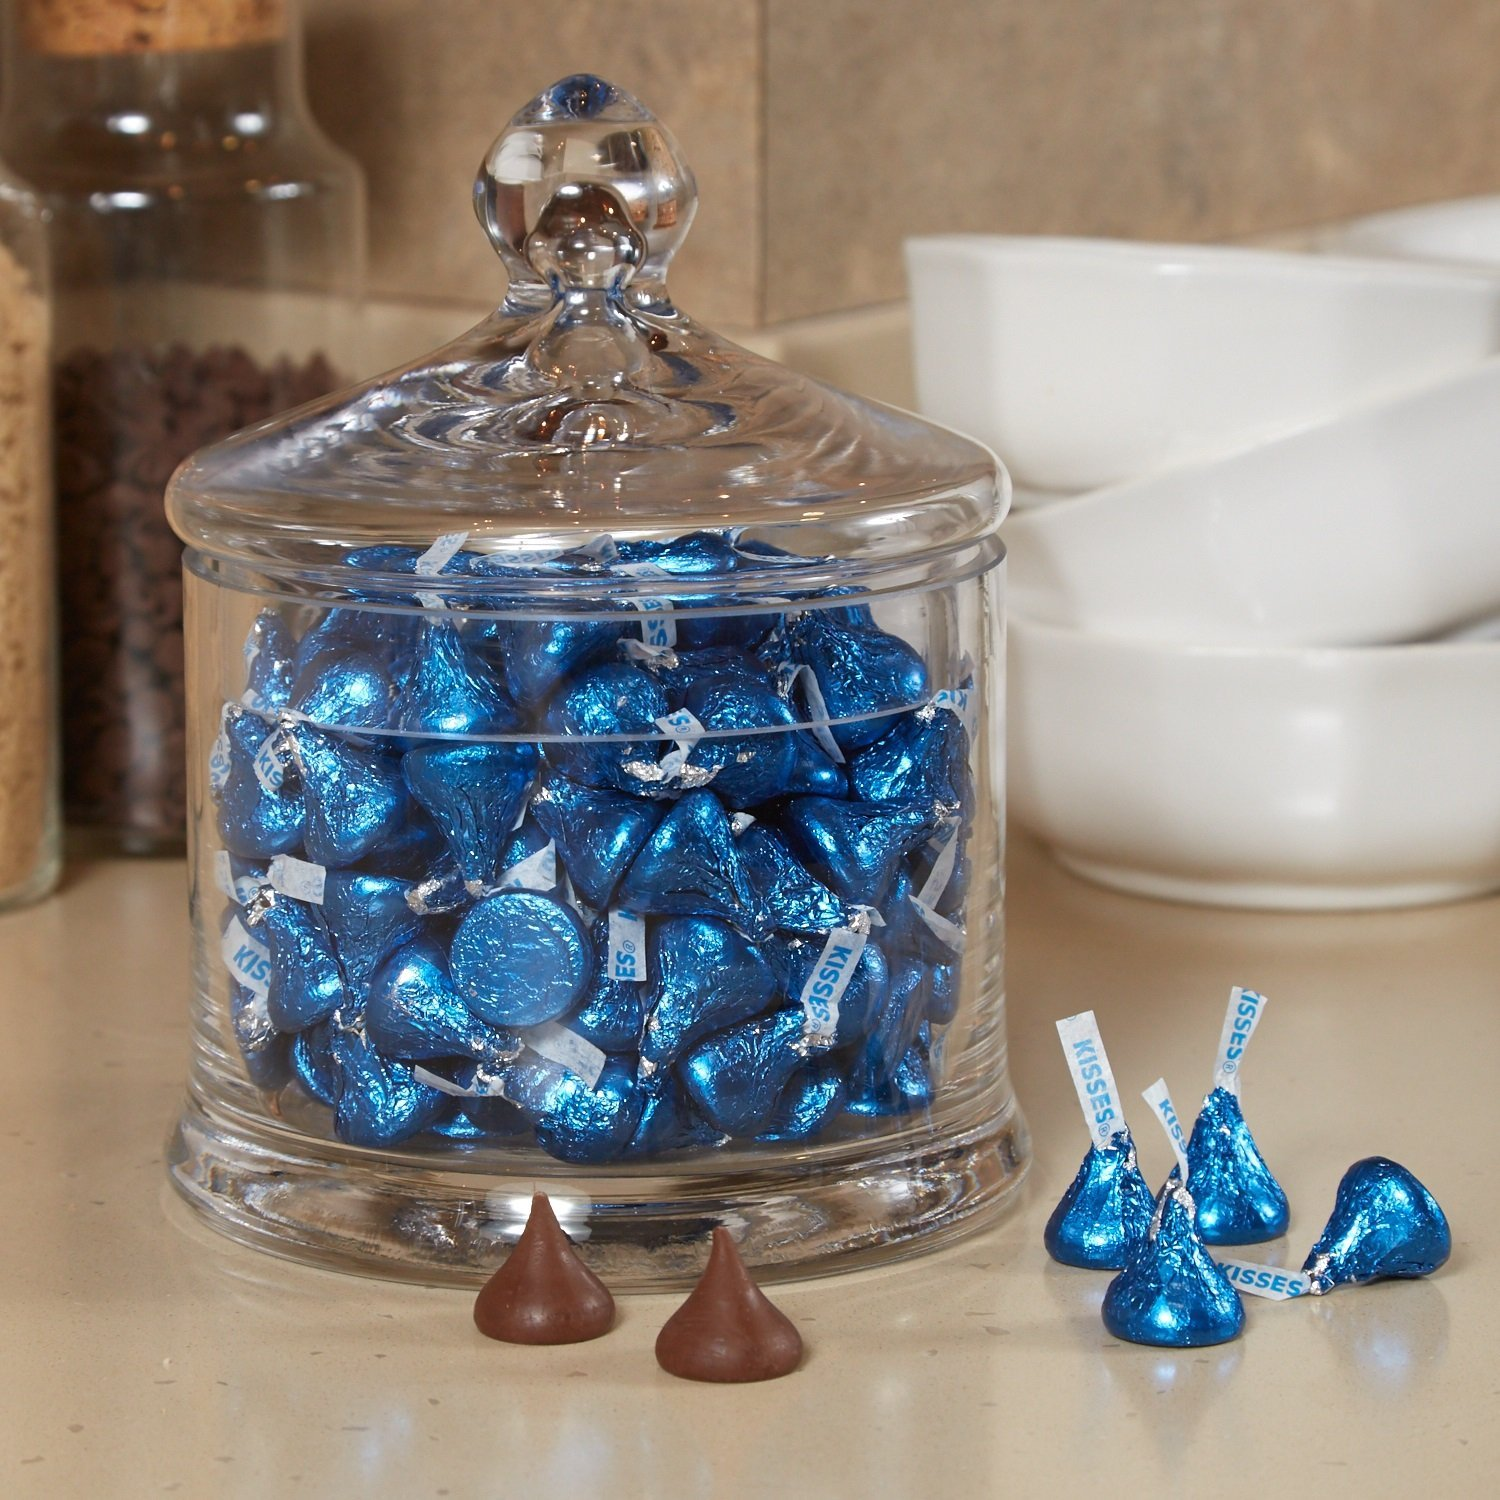 HERSHEY'S KISSES Chocolate Candy, Dark Blue Foils, 4.1lb Bulk Candy, approx. 400 Pieces. Perfect for Graduation and 4th of July Decorations by Kisses (Image #8)